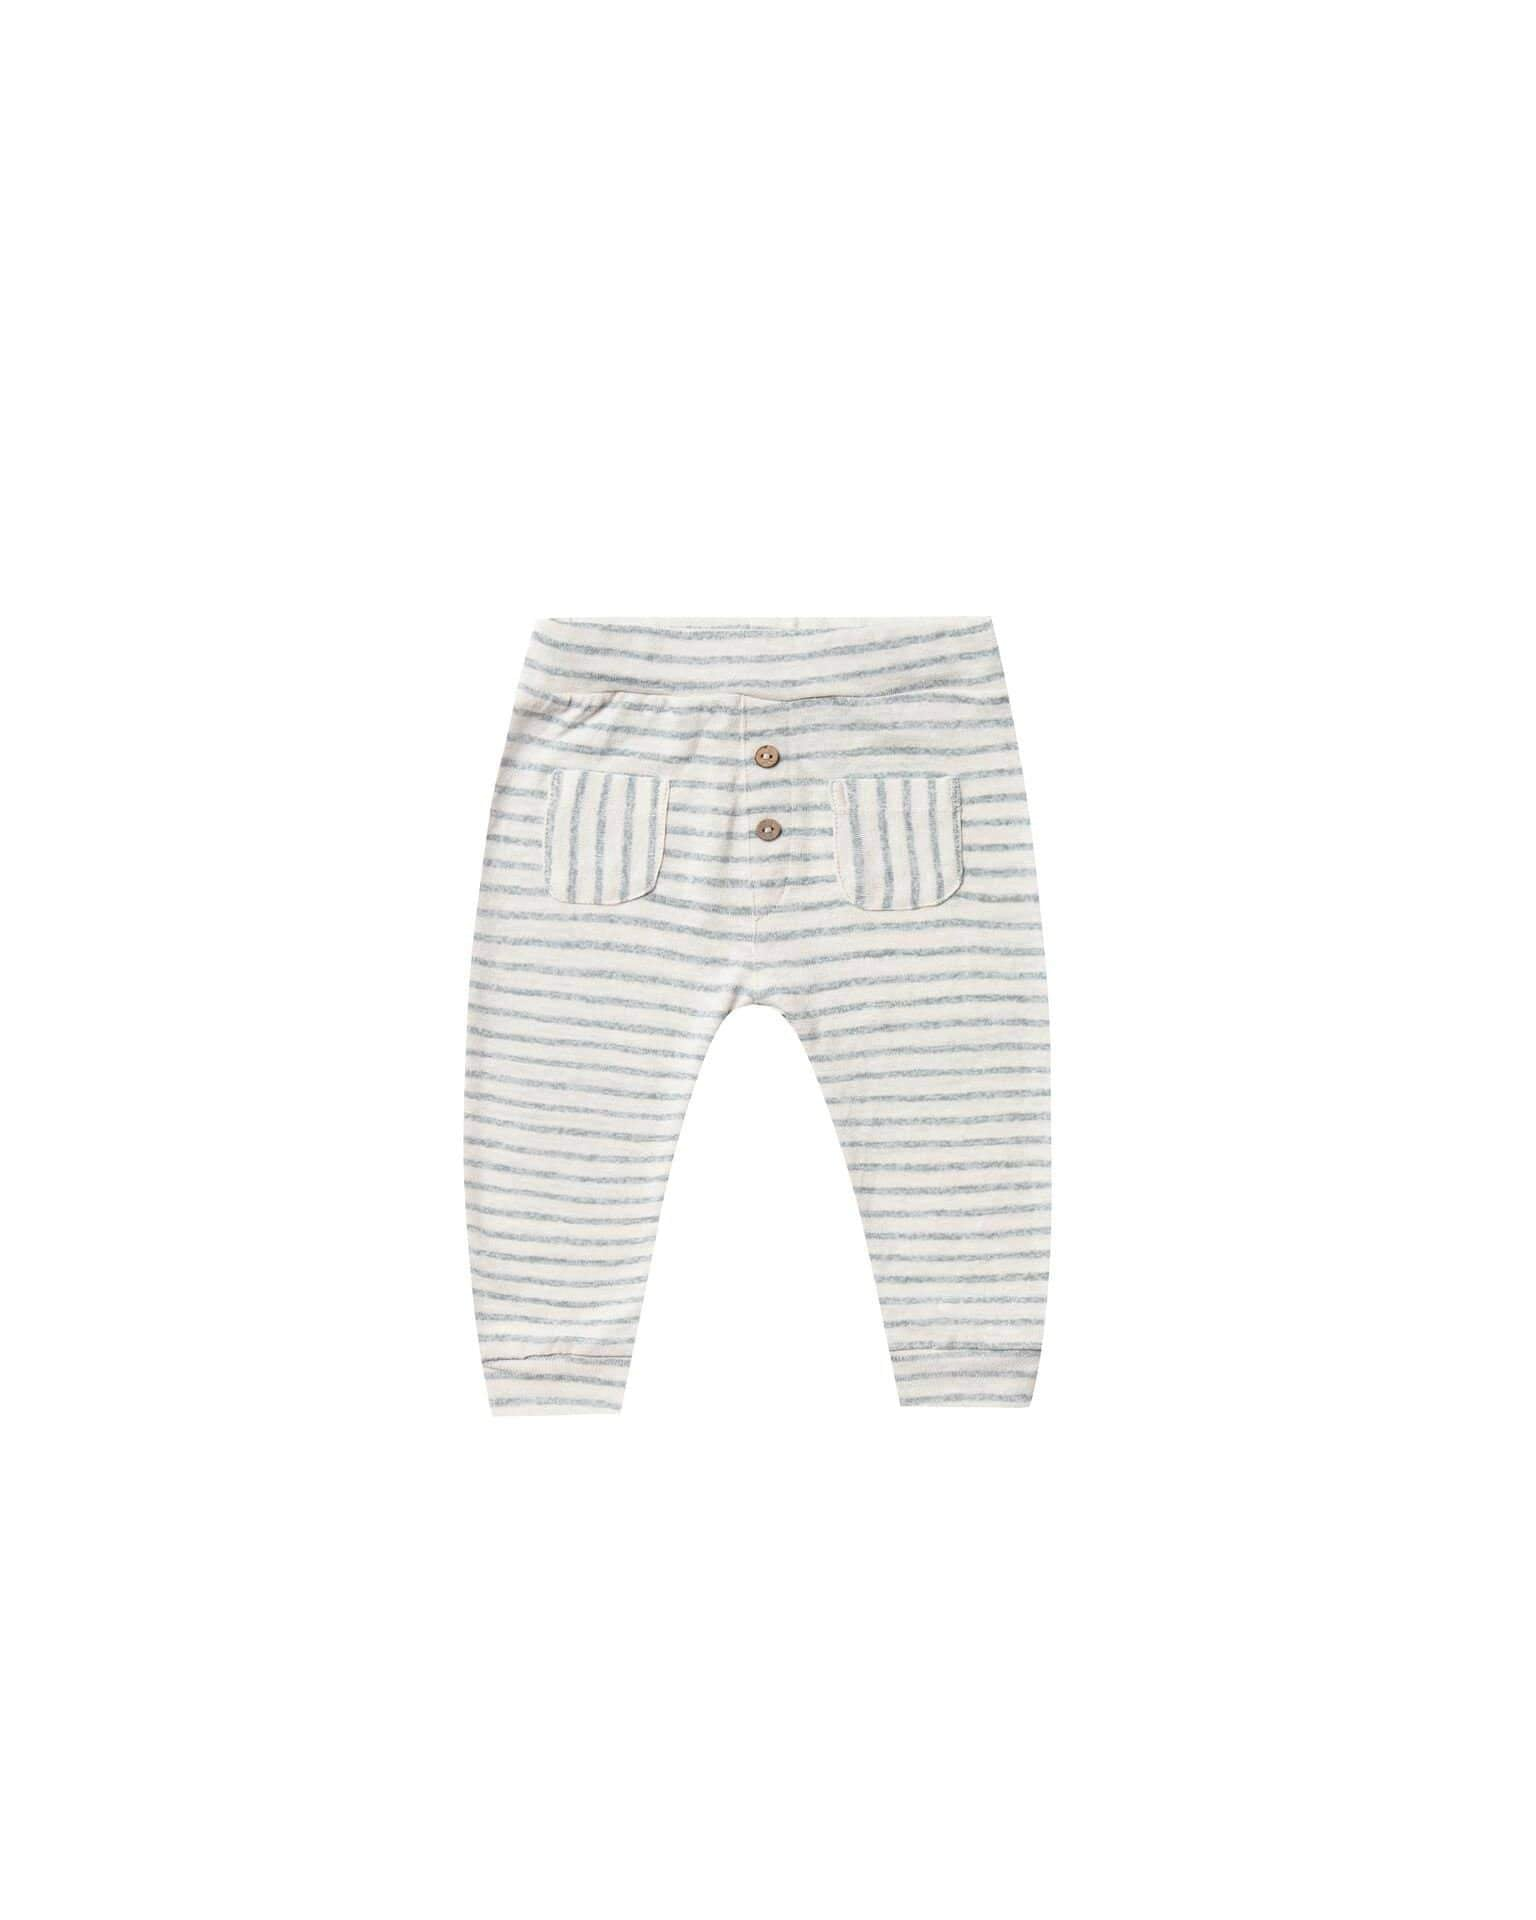 Stripe Baby Pant - Sea